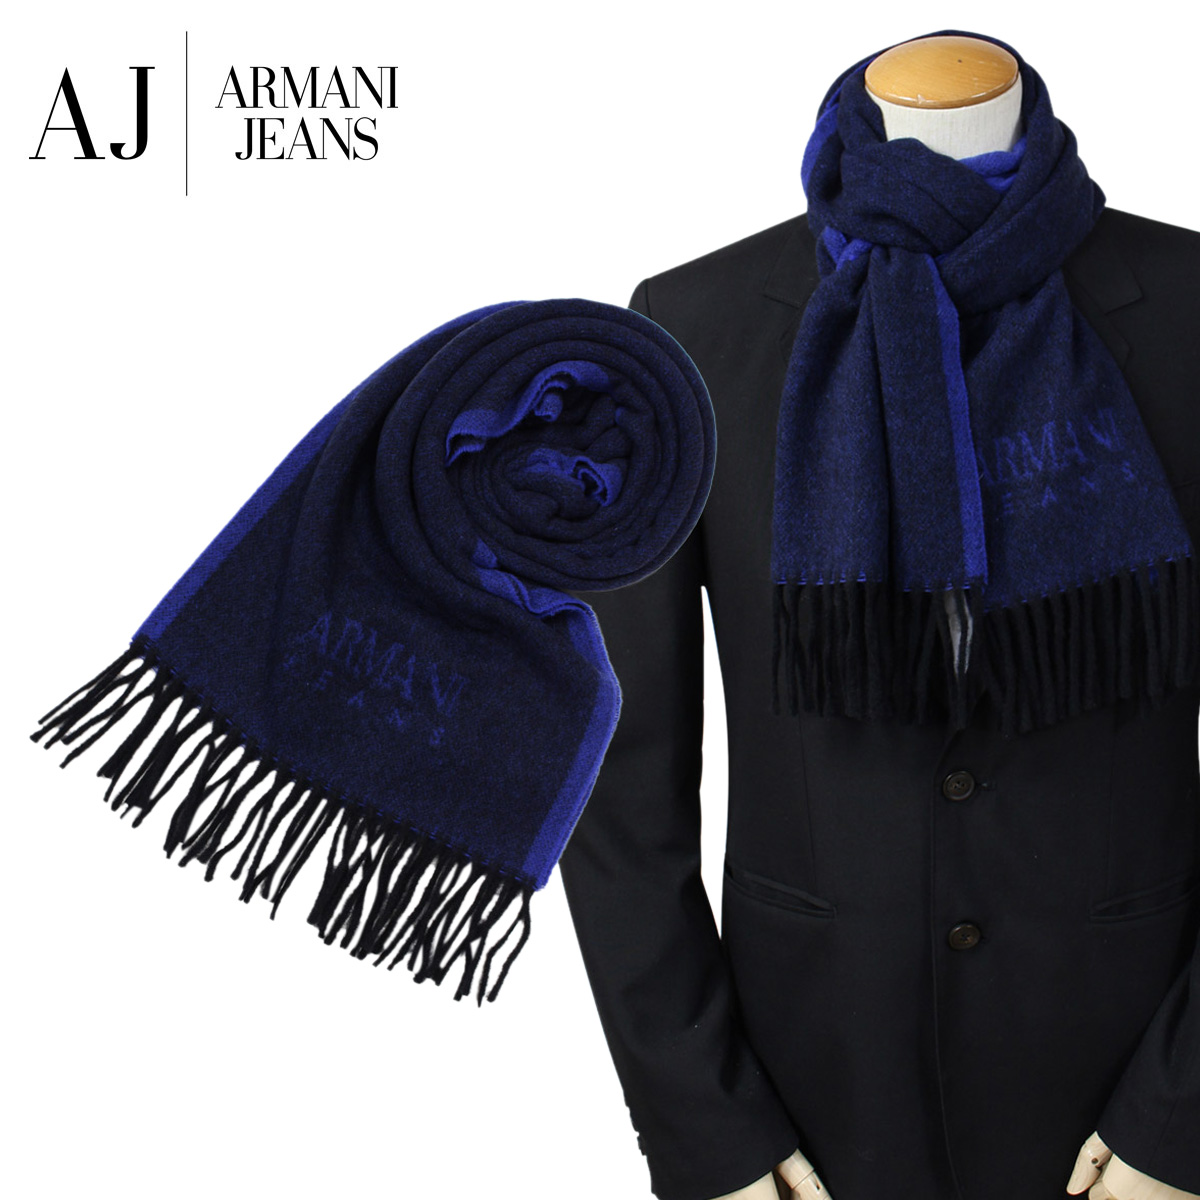 huge selection of 13b58 f269d Business casual 934098 7A713 made in ARMANI JEANS scarf men Armani wool  Italy